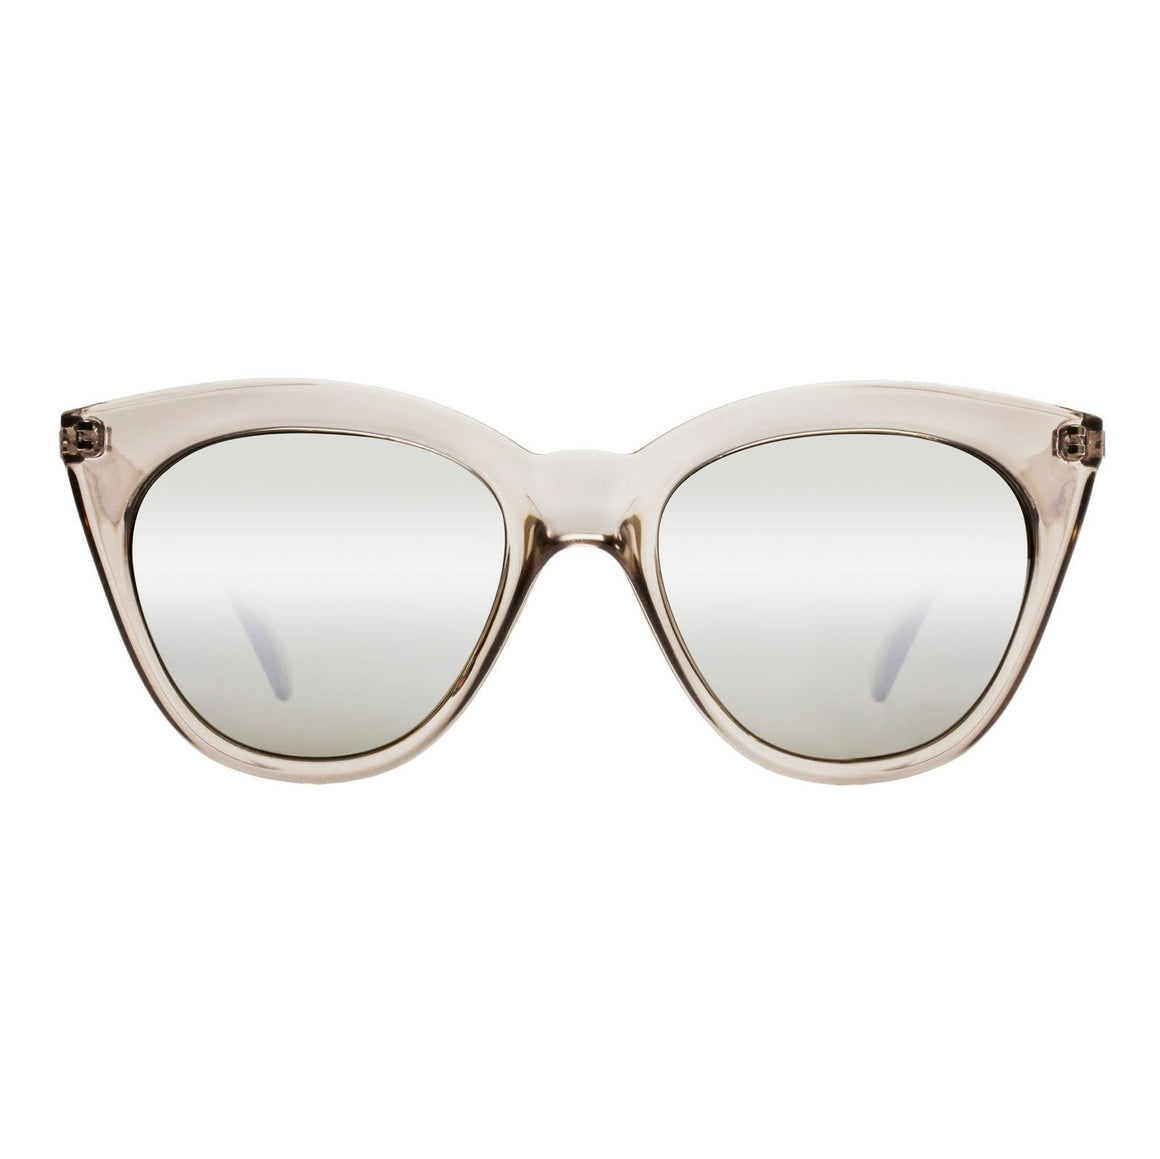 Le Spec Halfmoon Magic Sunglasses | Shop at Wallace and Gibbs NZ